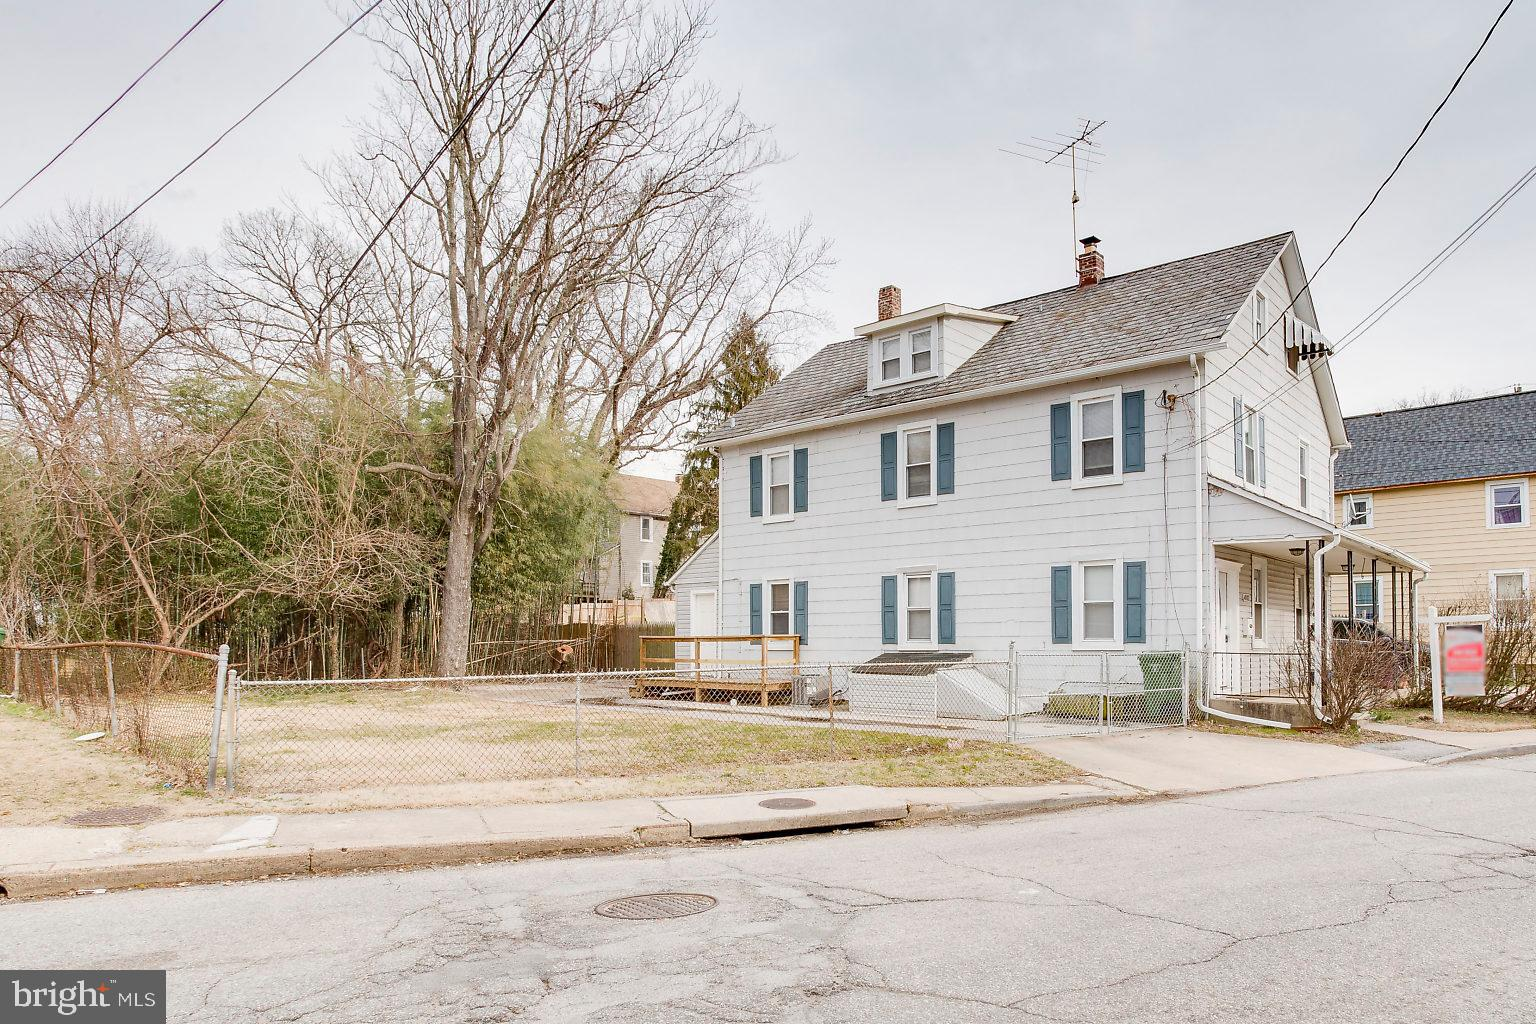 4002 PARKSIDE DRIVE, BALTIMORE, MD 21206